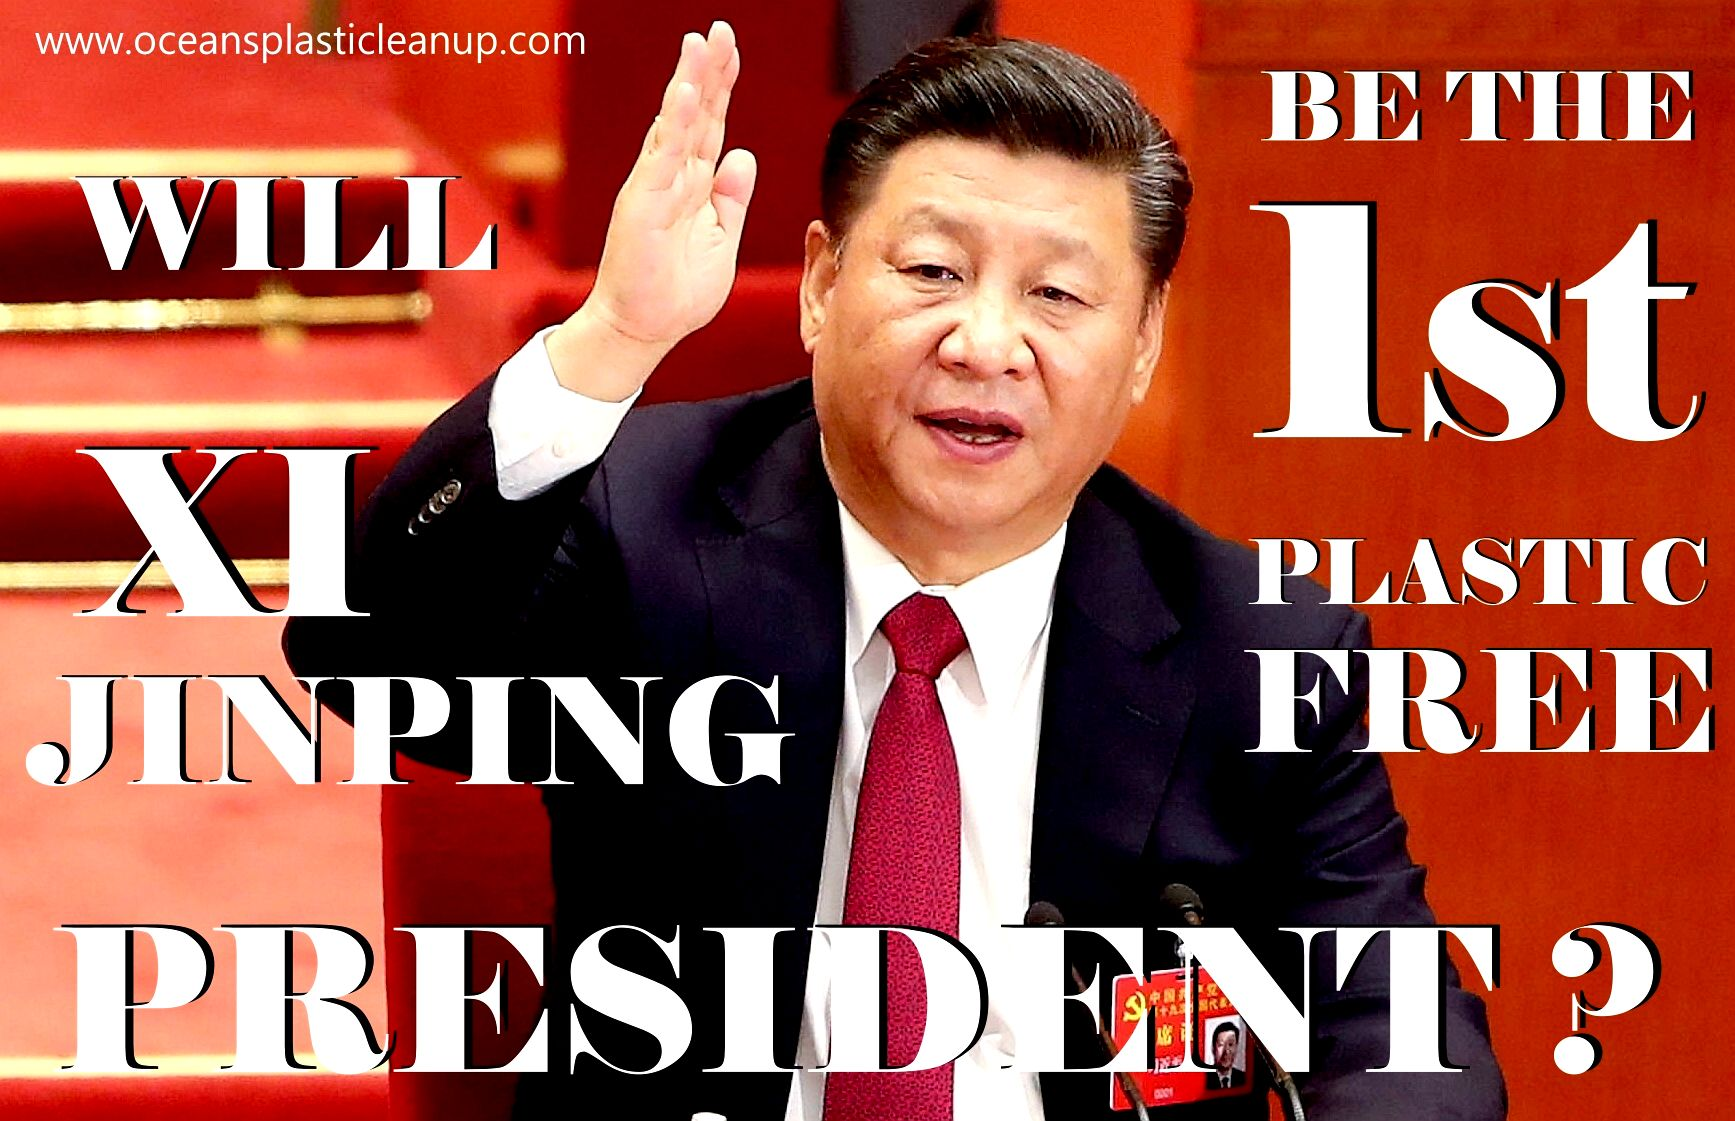 Could Xi Jinping be the first plastic free President of China ?